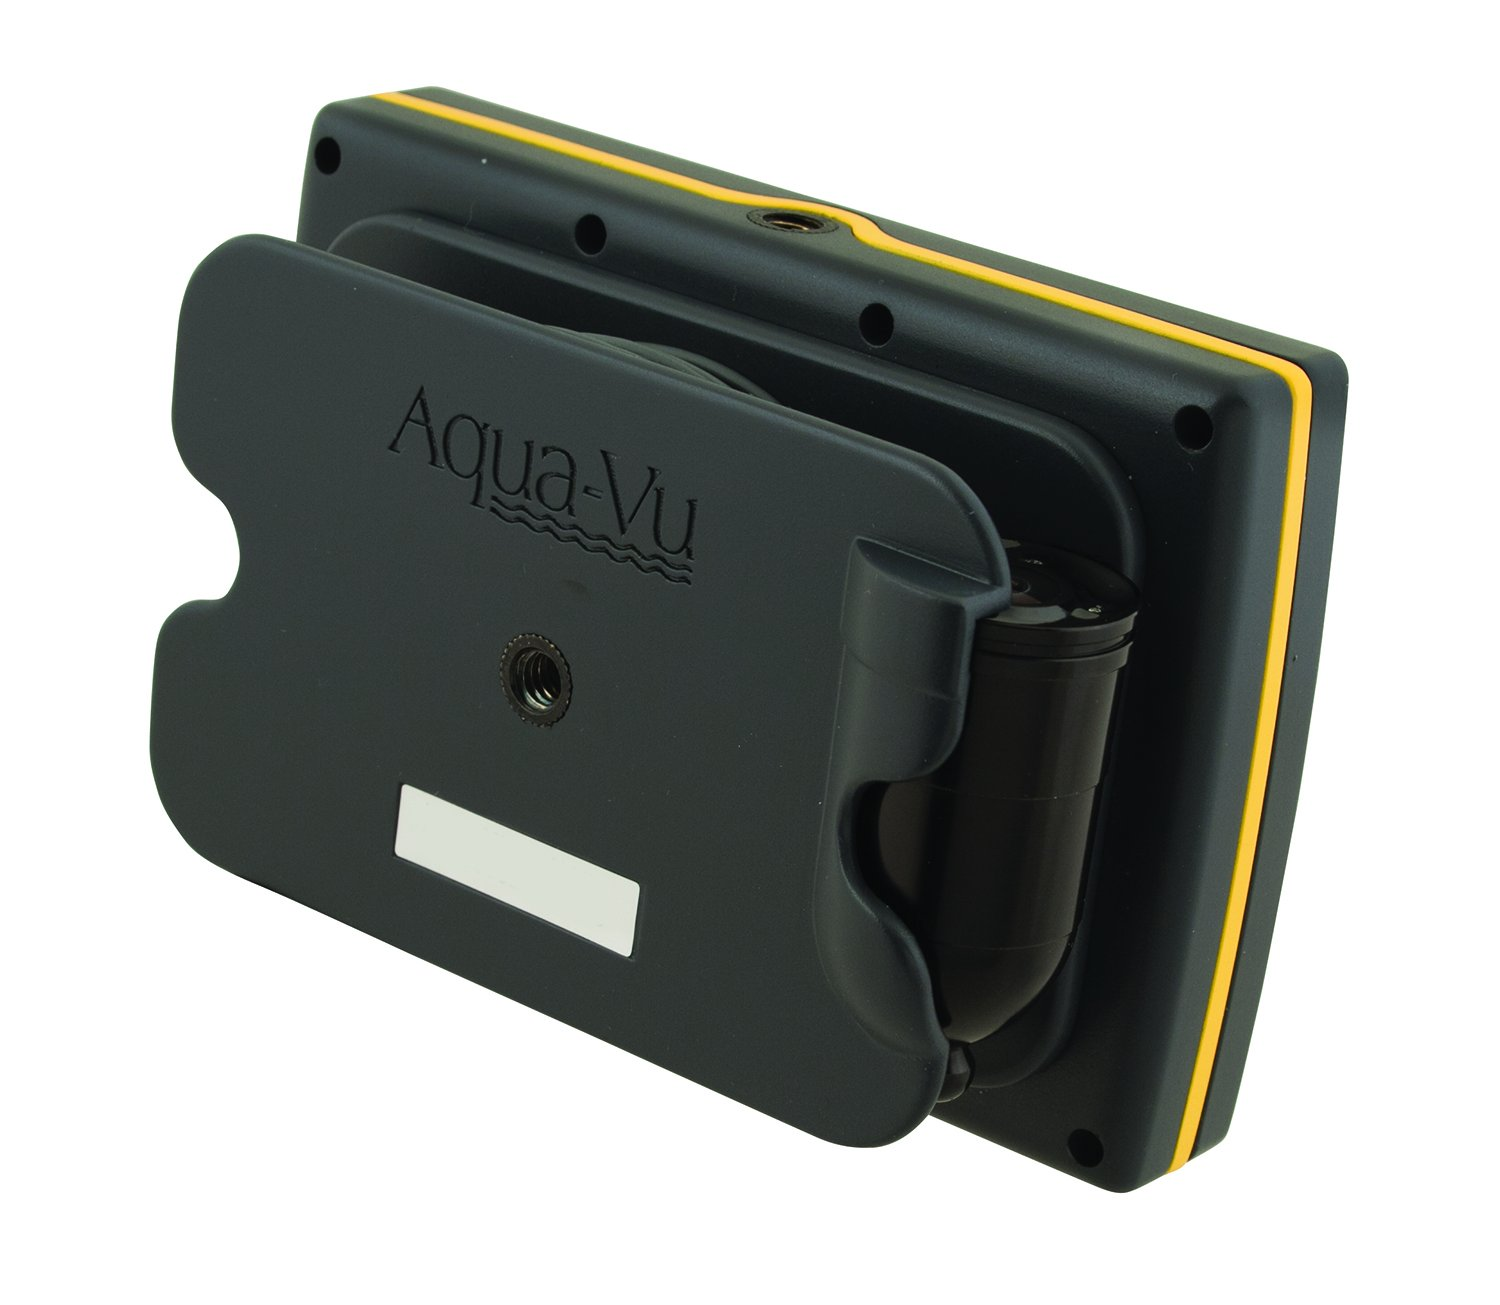 Aqua Vu Micro Stealth 4.3 Underwater Camera Viewing System by Aqua-Vu (Image #3)